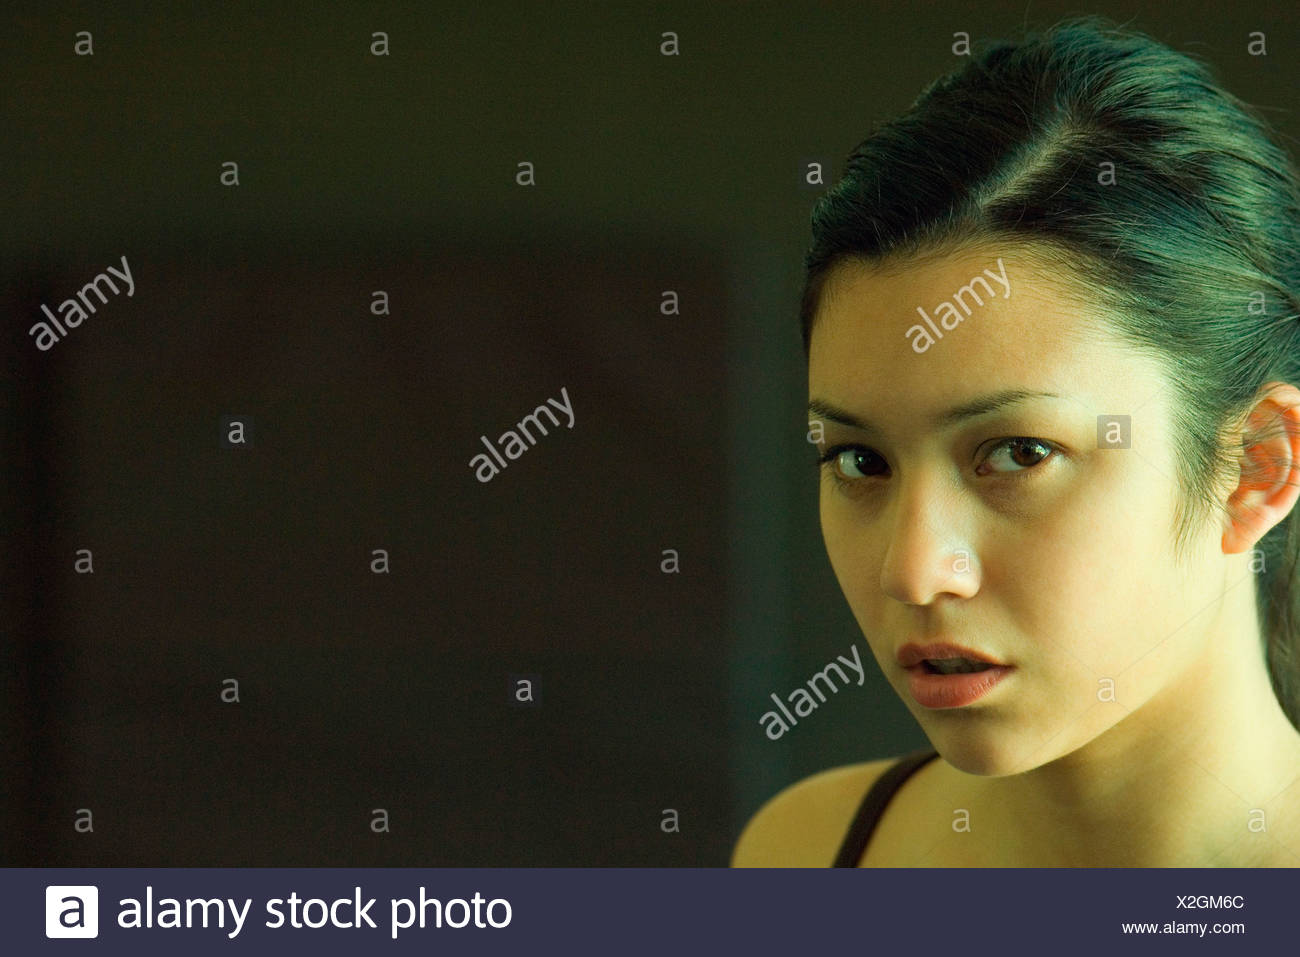 Young woman scowling at camera, portrait - Stock Image